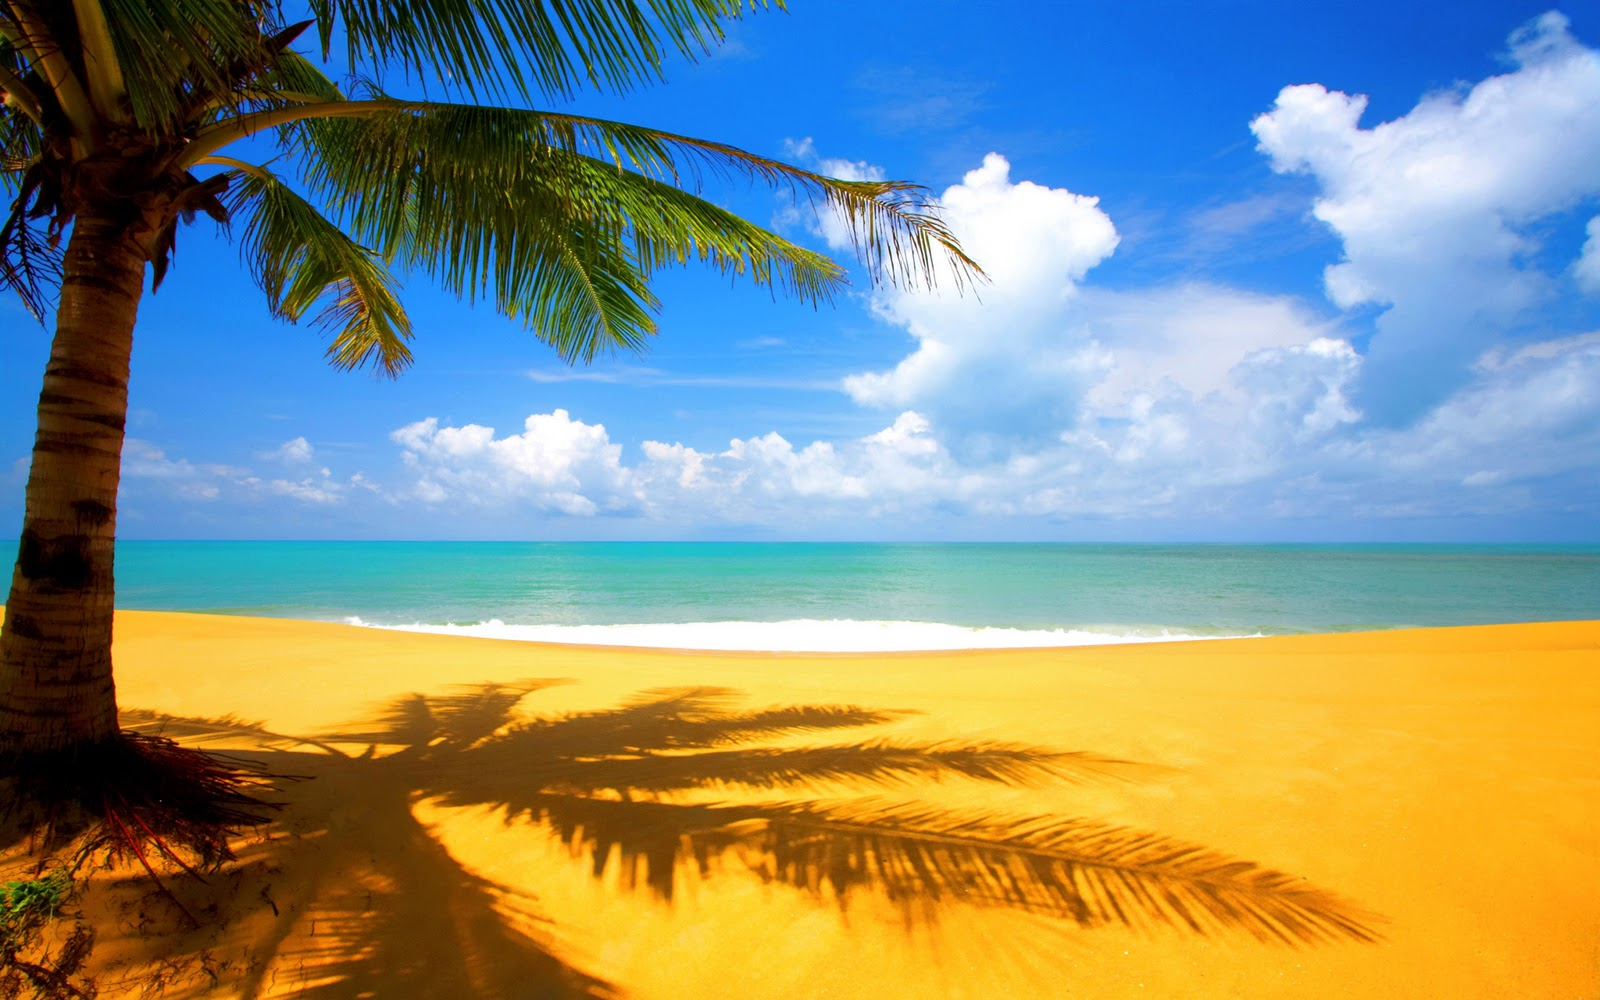 http://2.bp.blogspot.com/-EaBsMcIab4Y/TrAovgA5LgI/AAAAAAAAAkY/To0WuEO7gLc/s1600/tree-beach-side-wallpapers.jpg